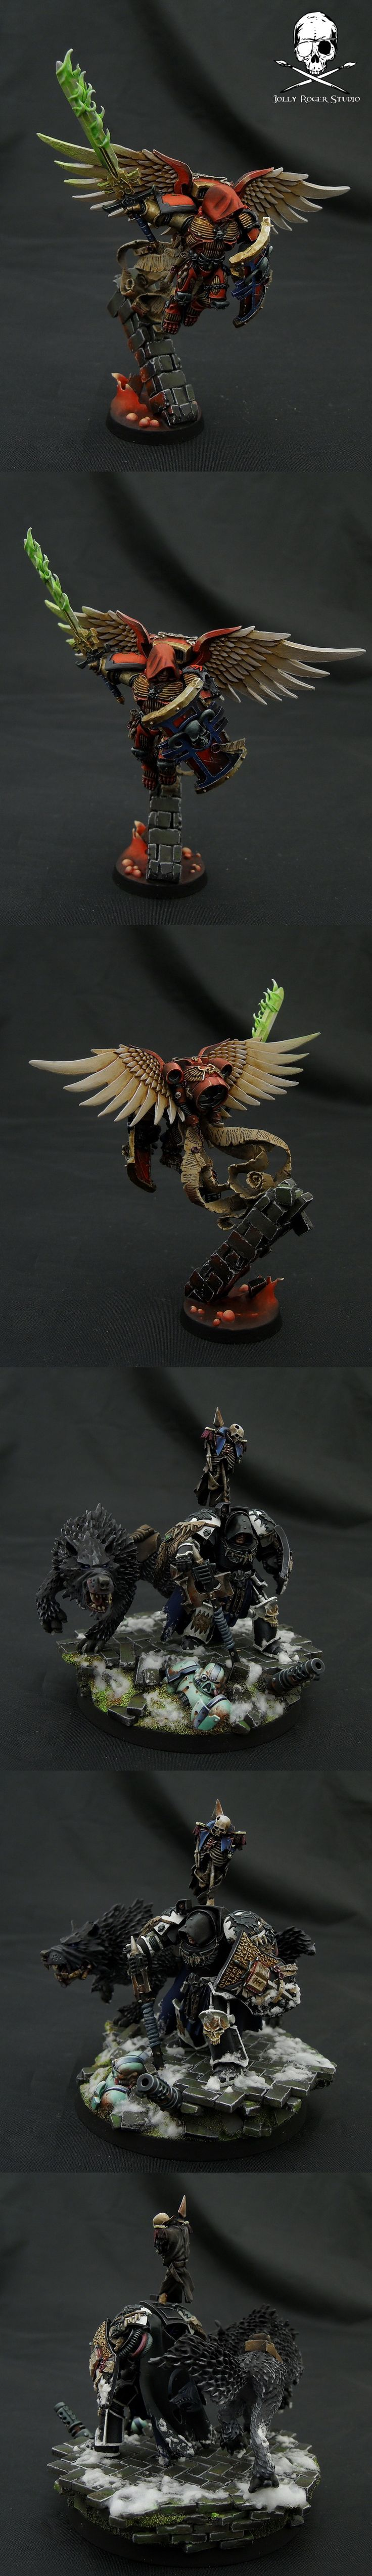 Amazing conversion work and painting.  Great color pallettes